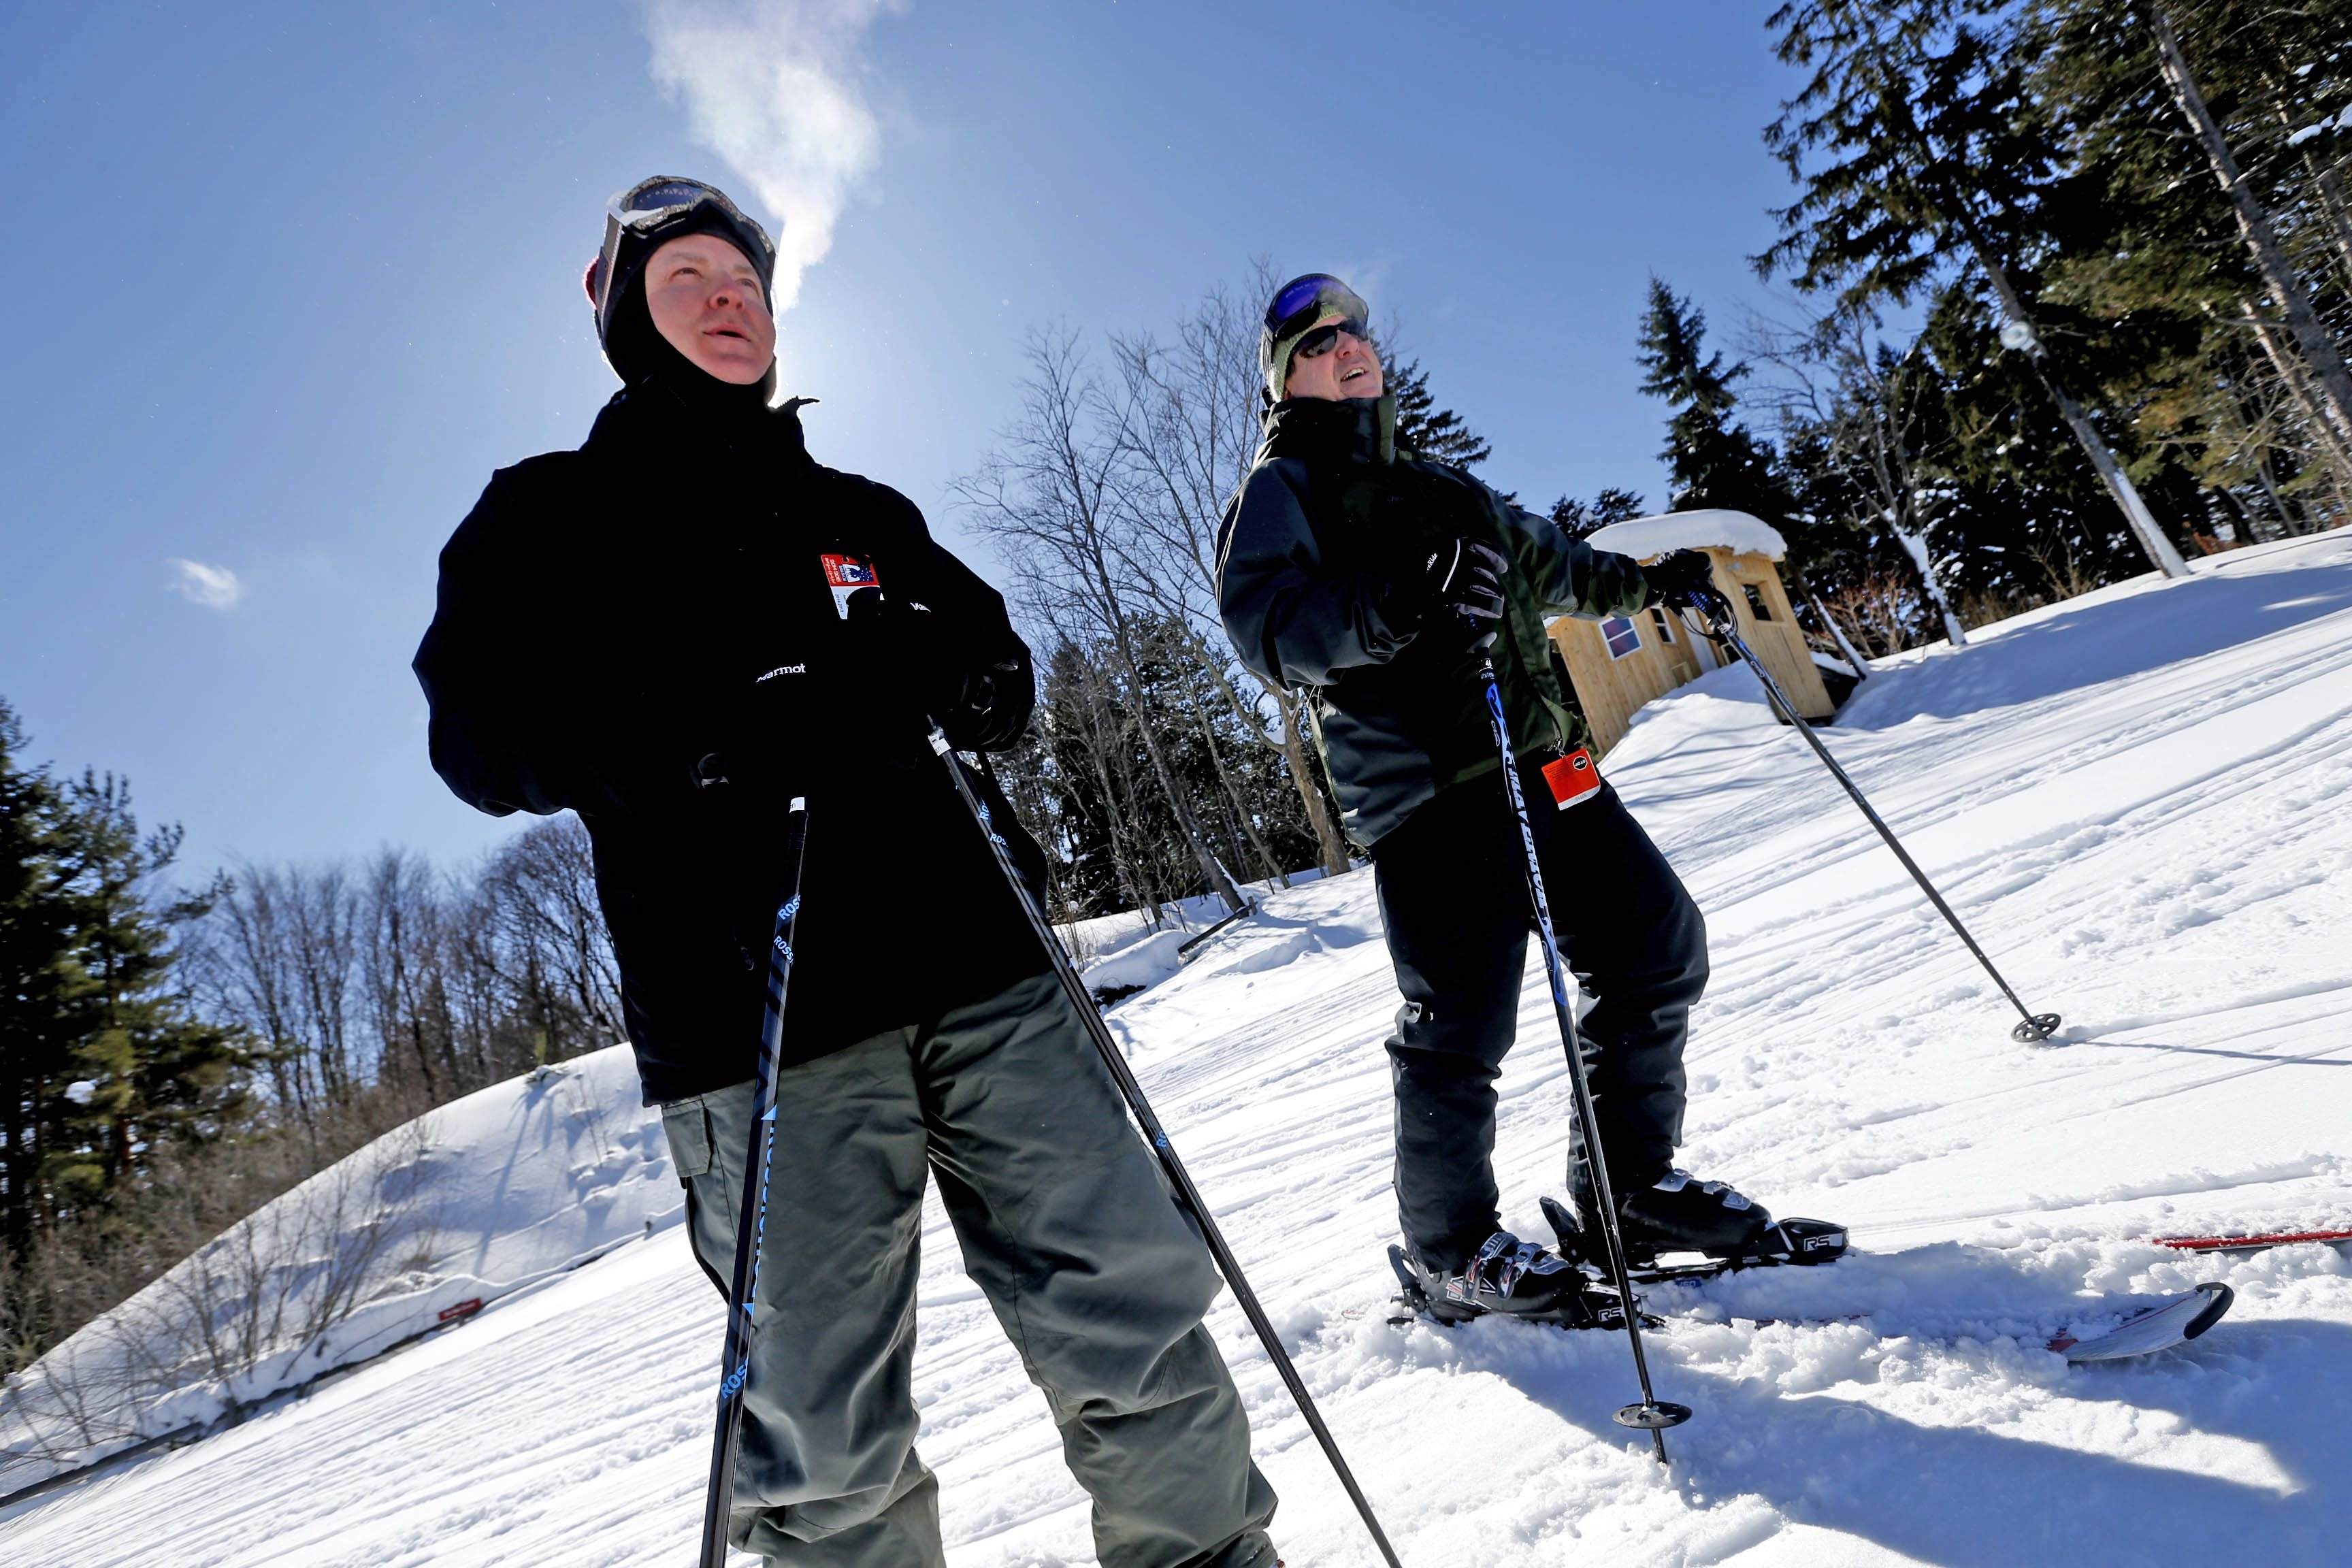 Sean Honan, left, of Amherst, and Bill Gallagher, of Buffalo, enjoy the near-perfect conditions at Buffalo Ski Club on Wednesday.